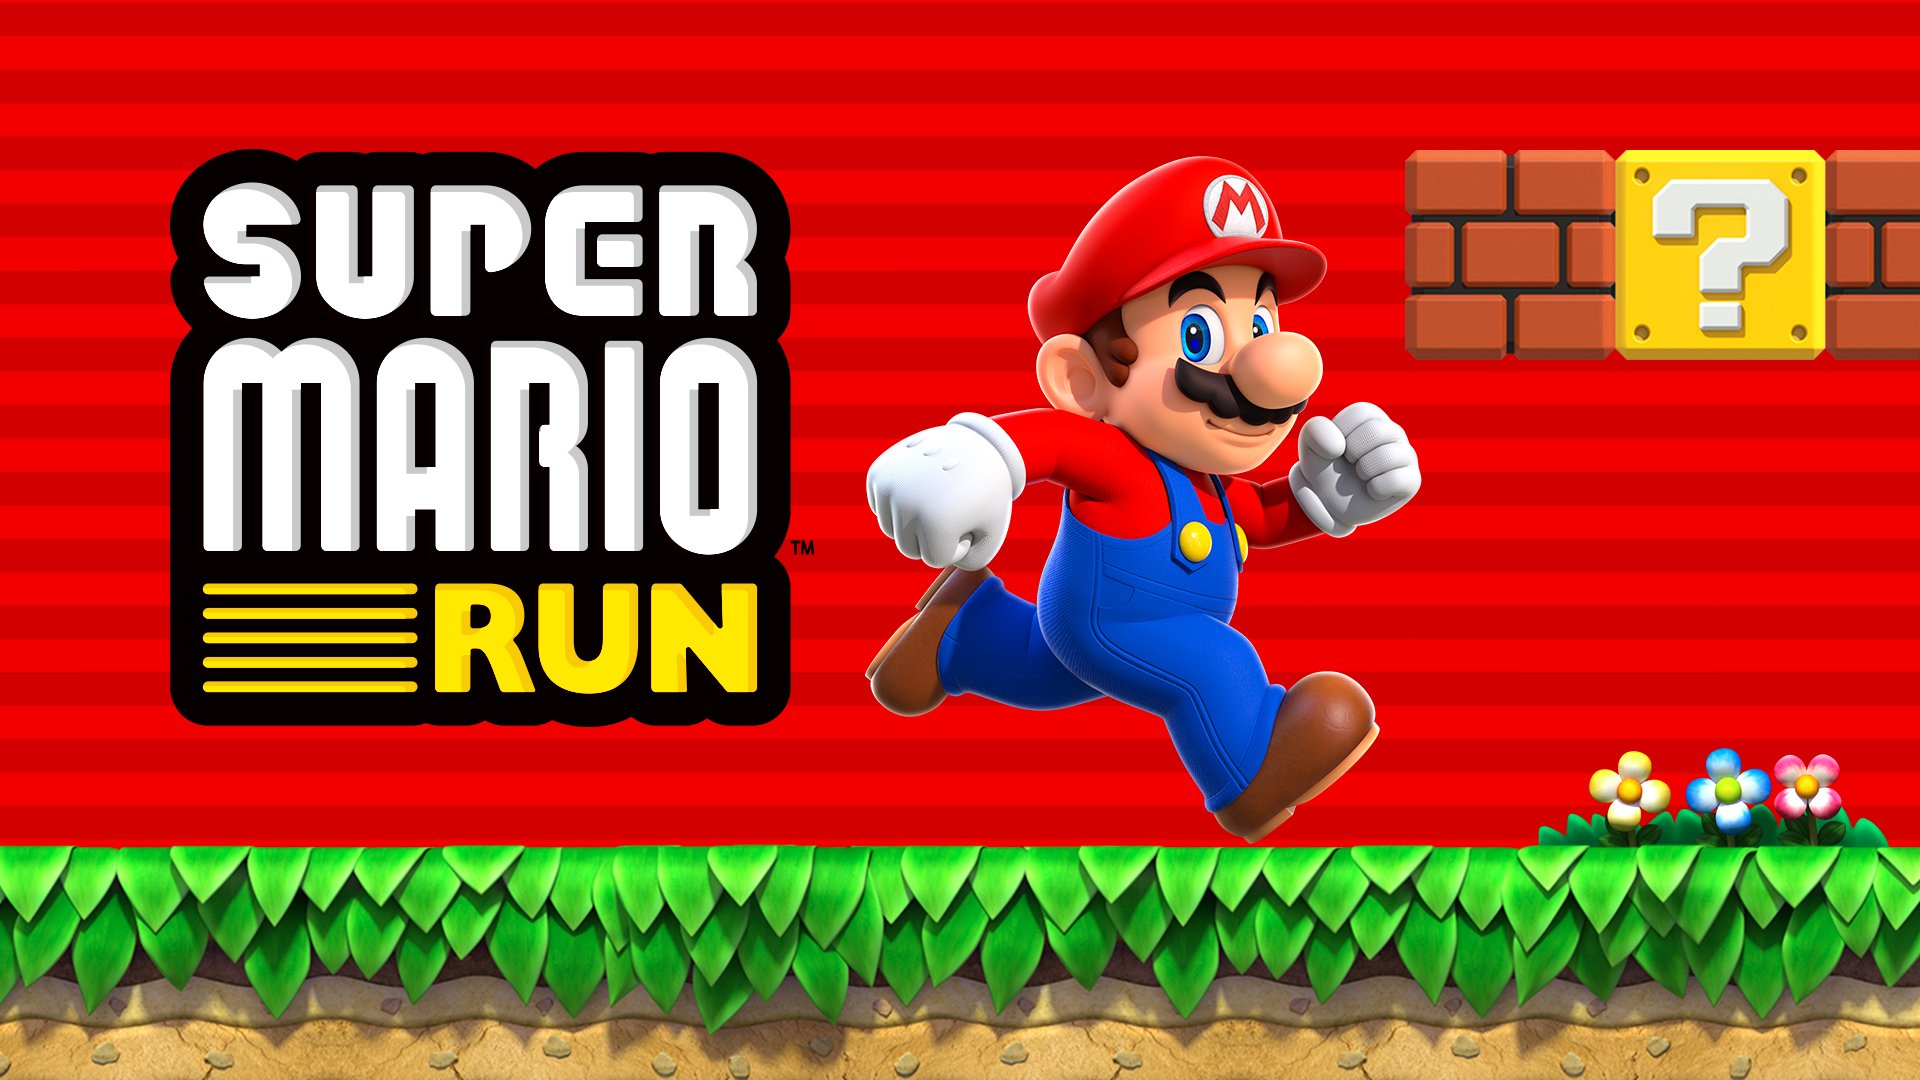 Super Mario Run Released Worldwide!